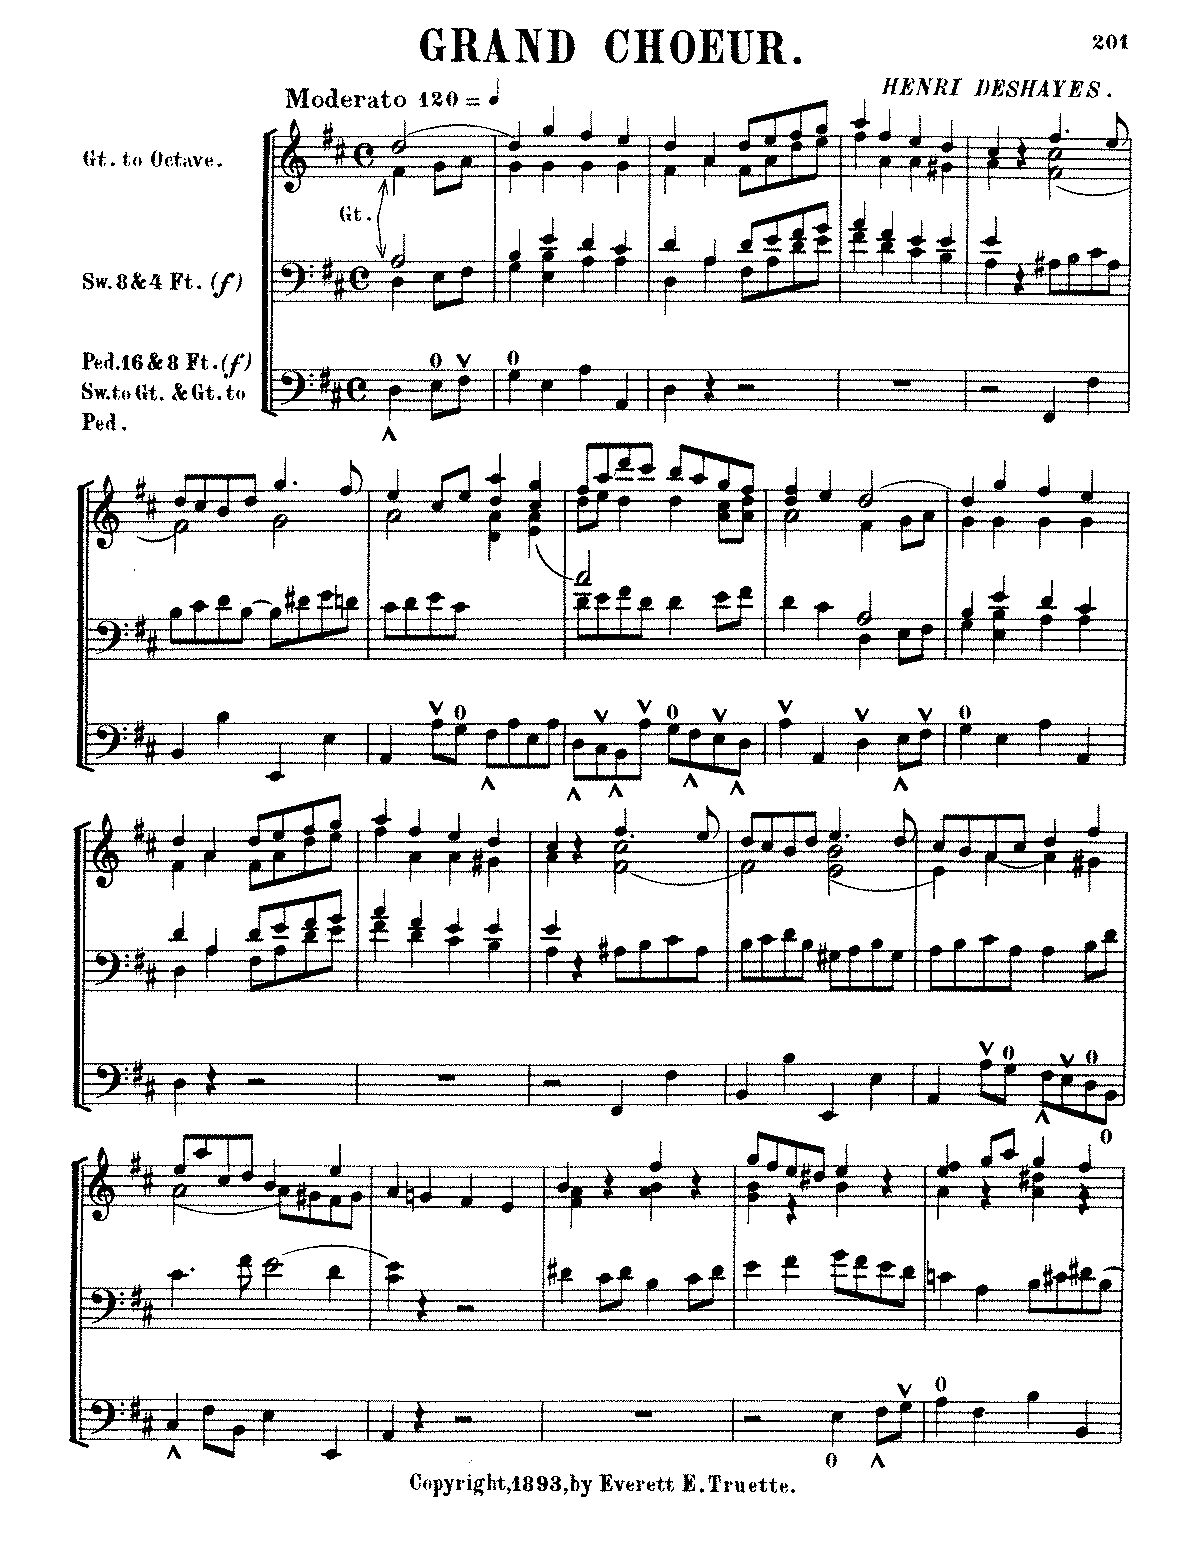 PMLP681546-HDeshayes Grand Choeur for Organ.pdf